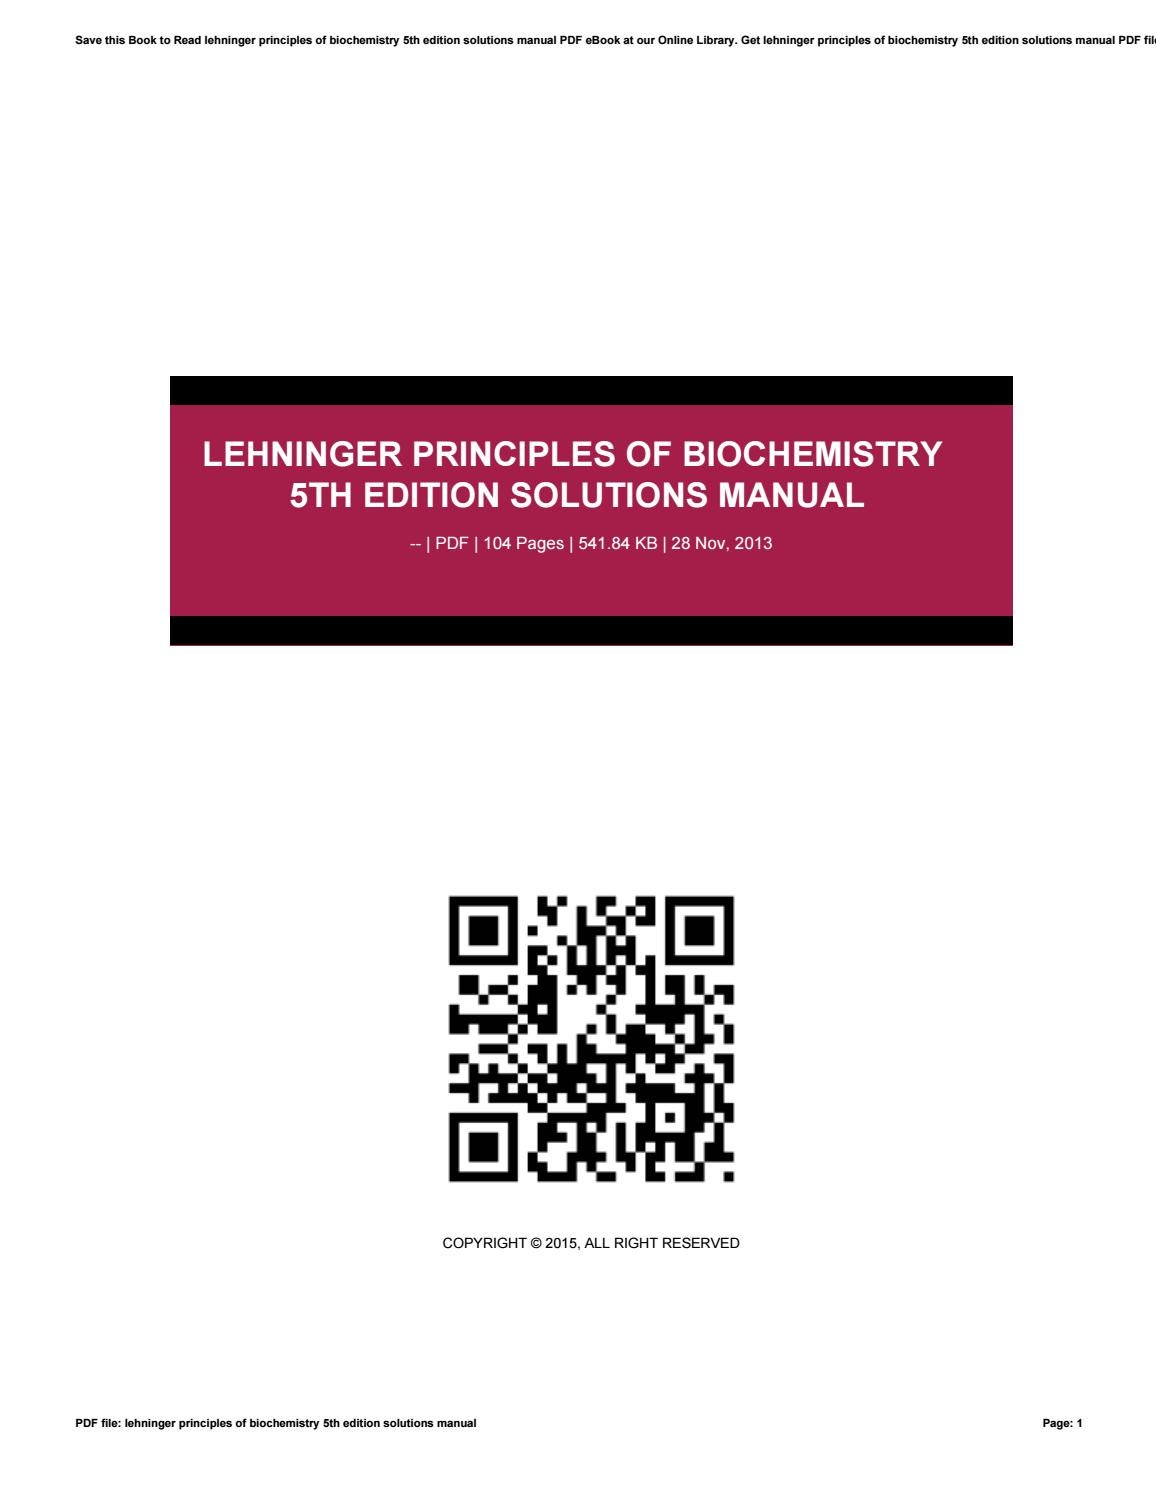 Lehninger principles of biochemistry 5th edition solutions manual by  elie31taman - issuu